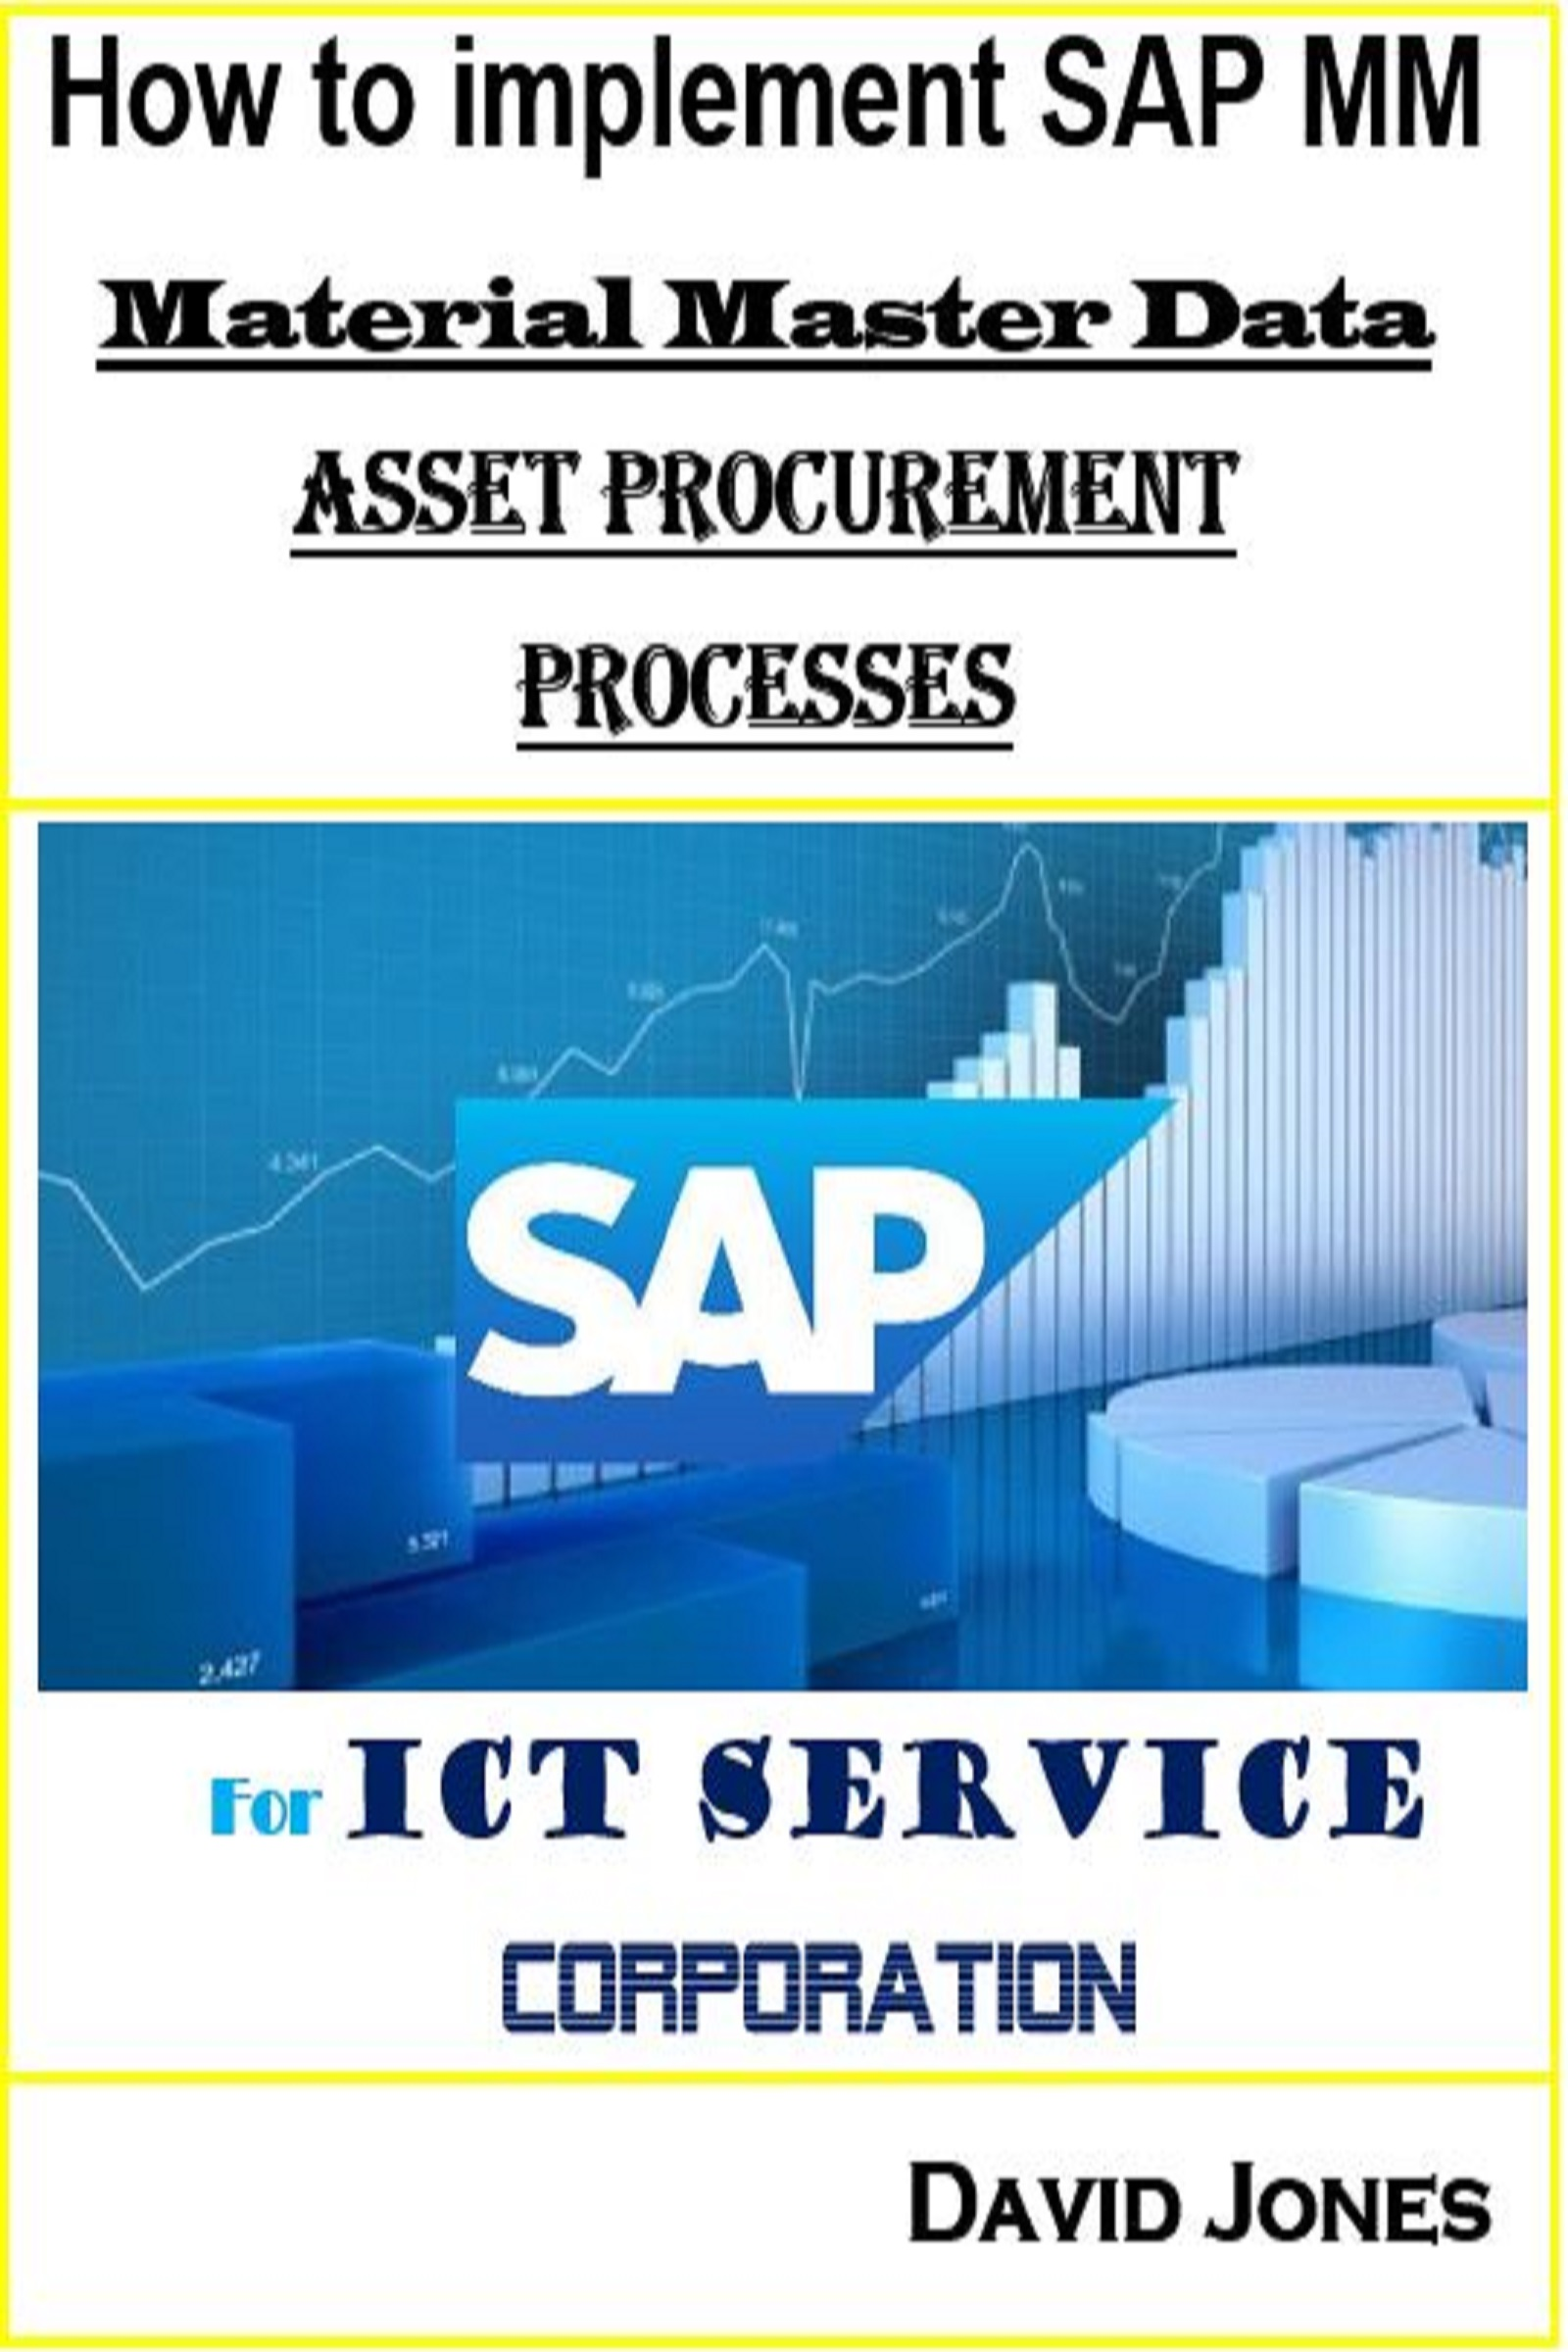 How to Implement SAP MM-Material Master Data and Asset Procurement  Processes for ICT service Corporation, an Ebook by David Jones